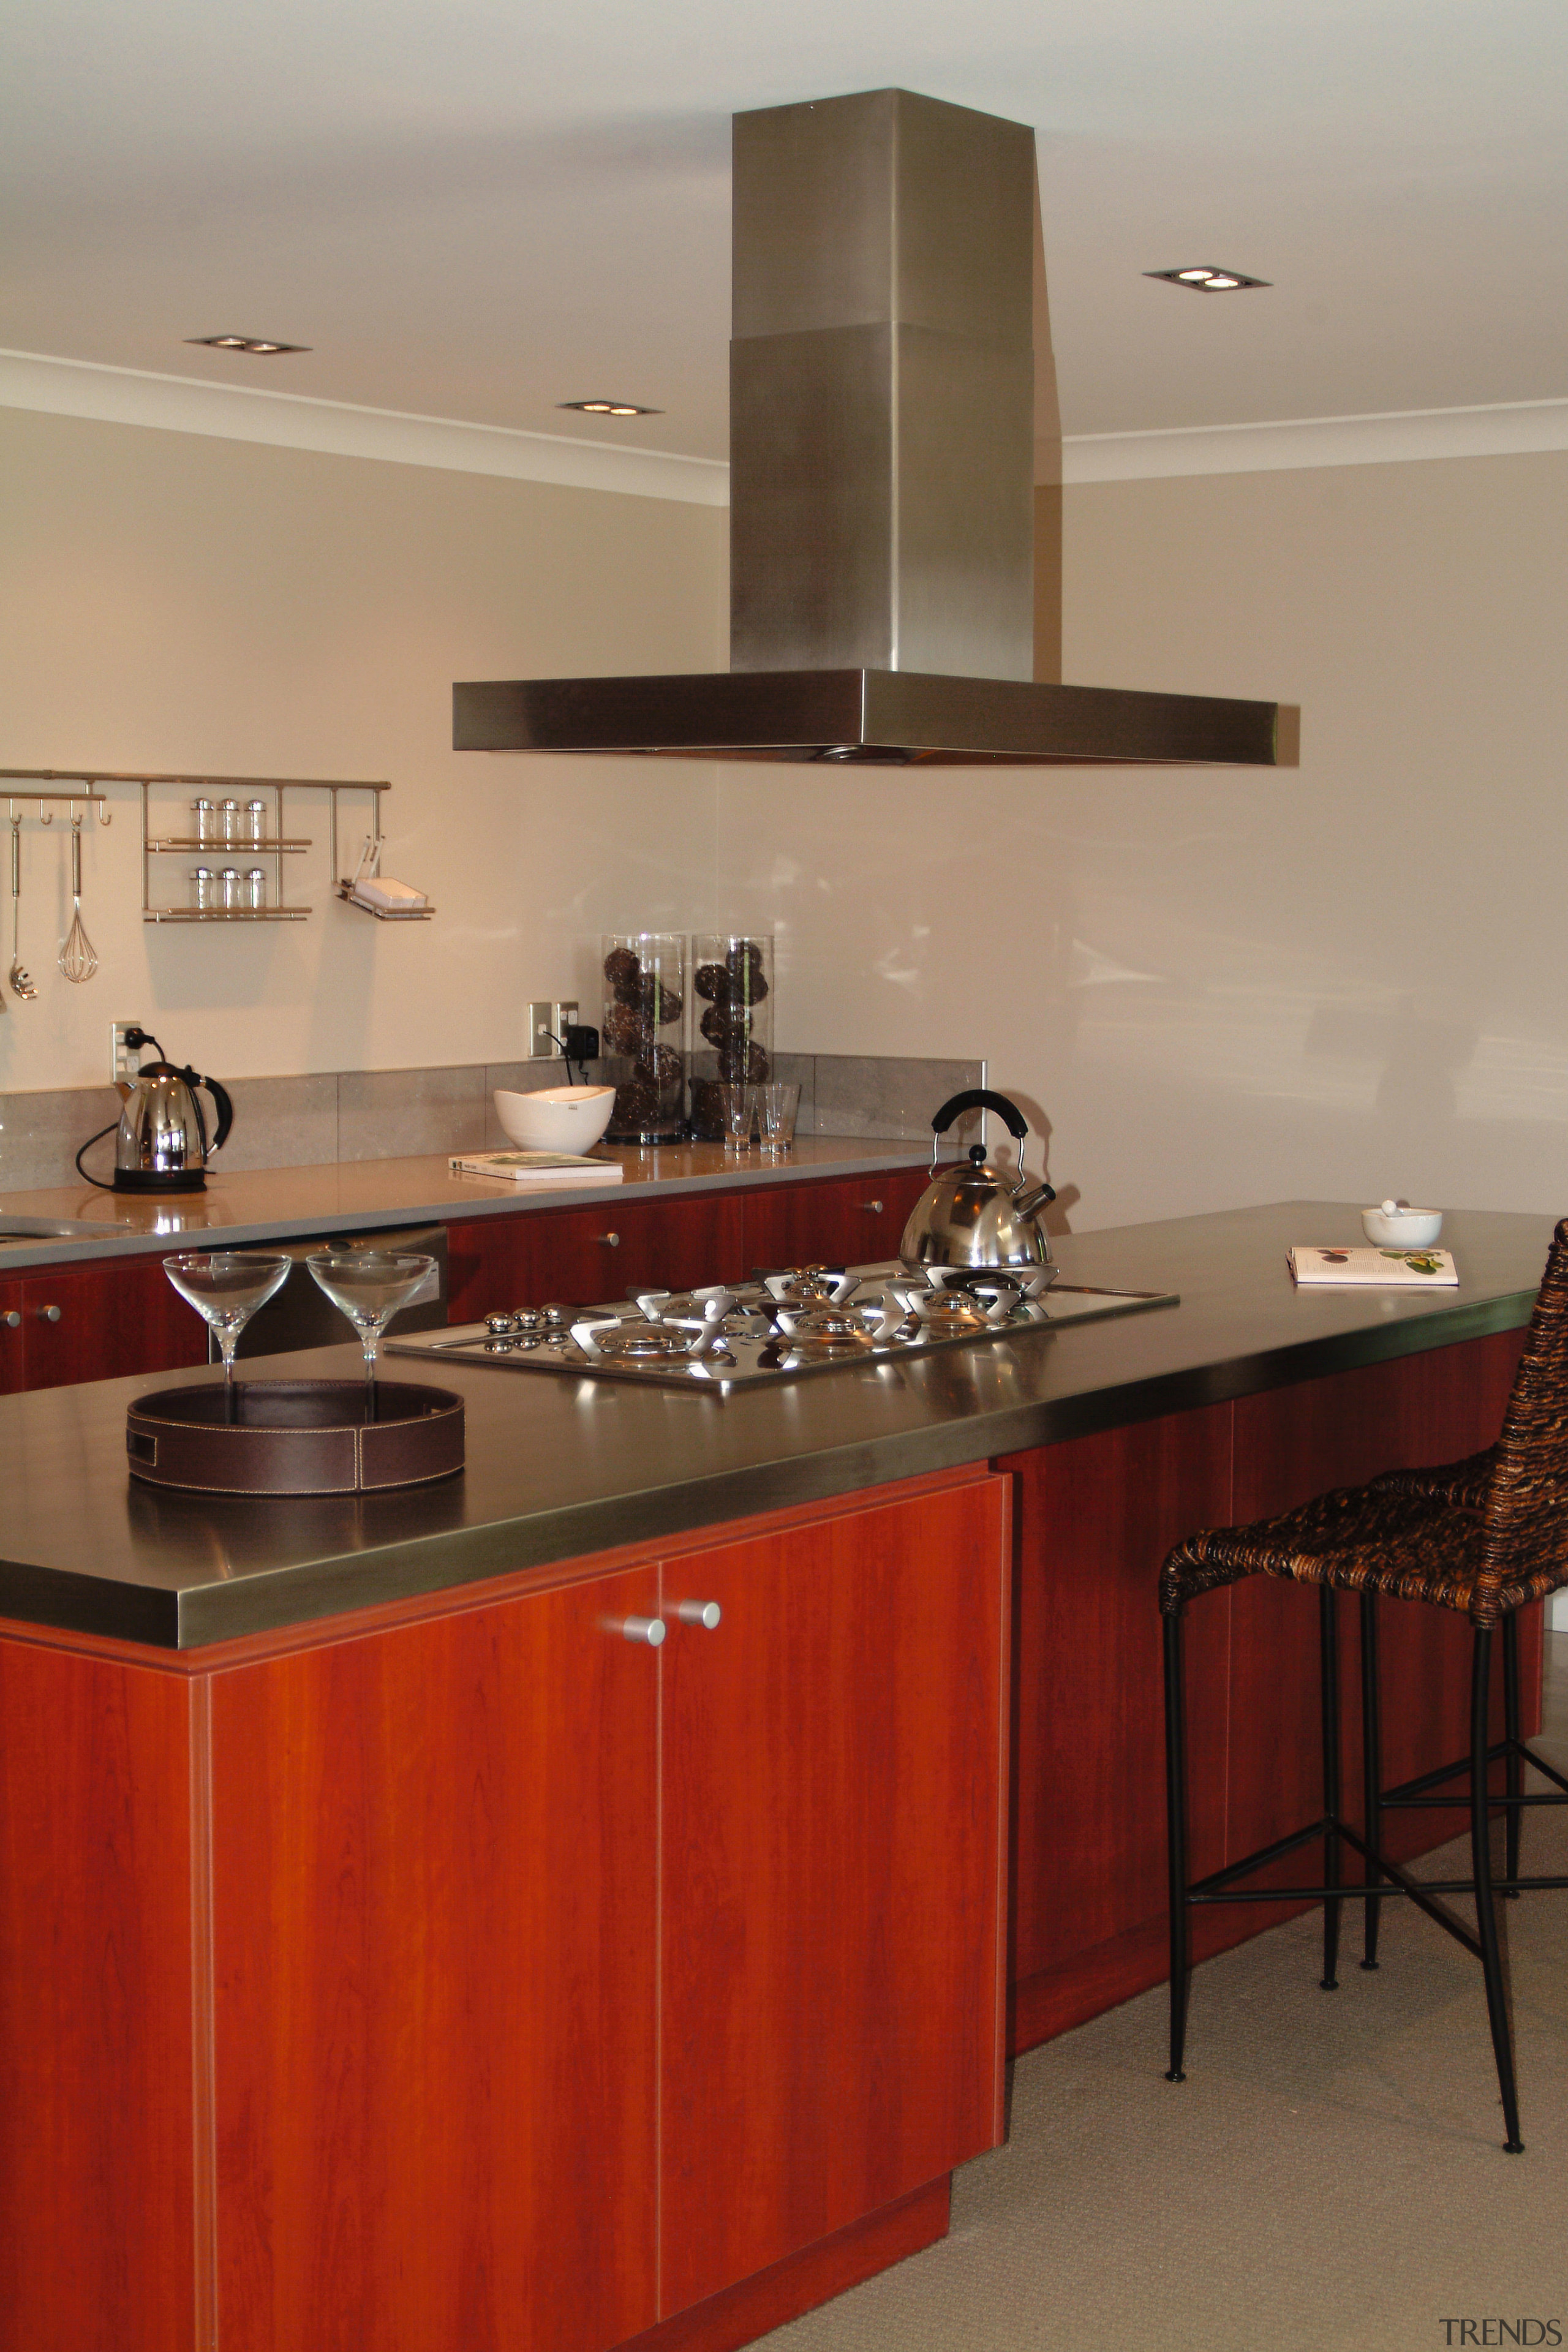 view of the kitchen and stainless steel smeg cabinetry, countertop, cuisine classique, interior design, kitchen, room, under cabinet lighting, red